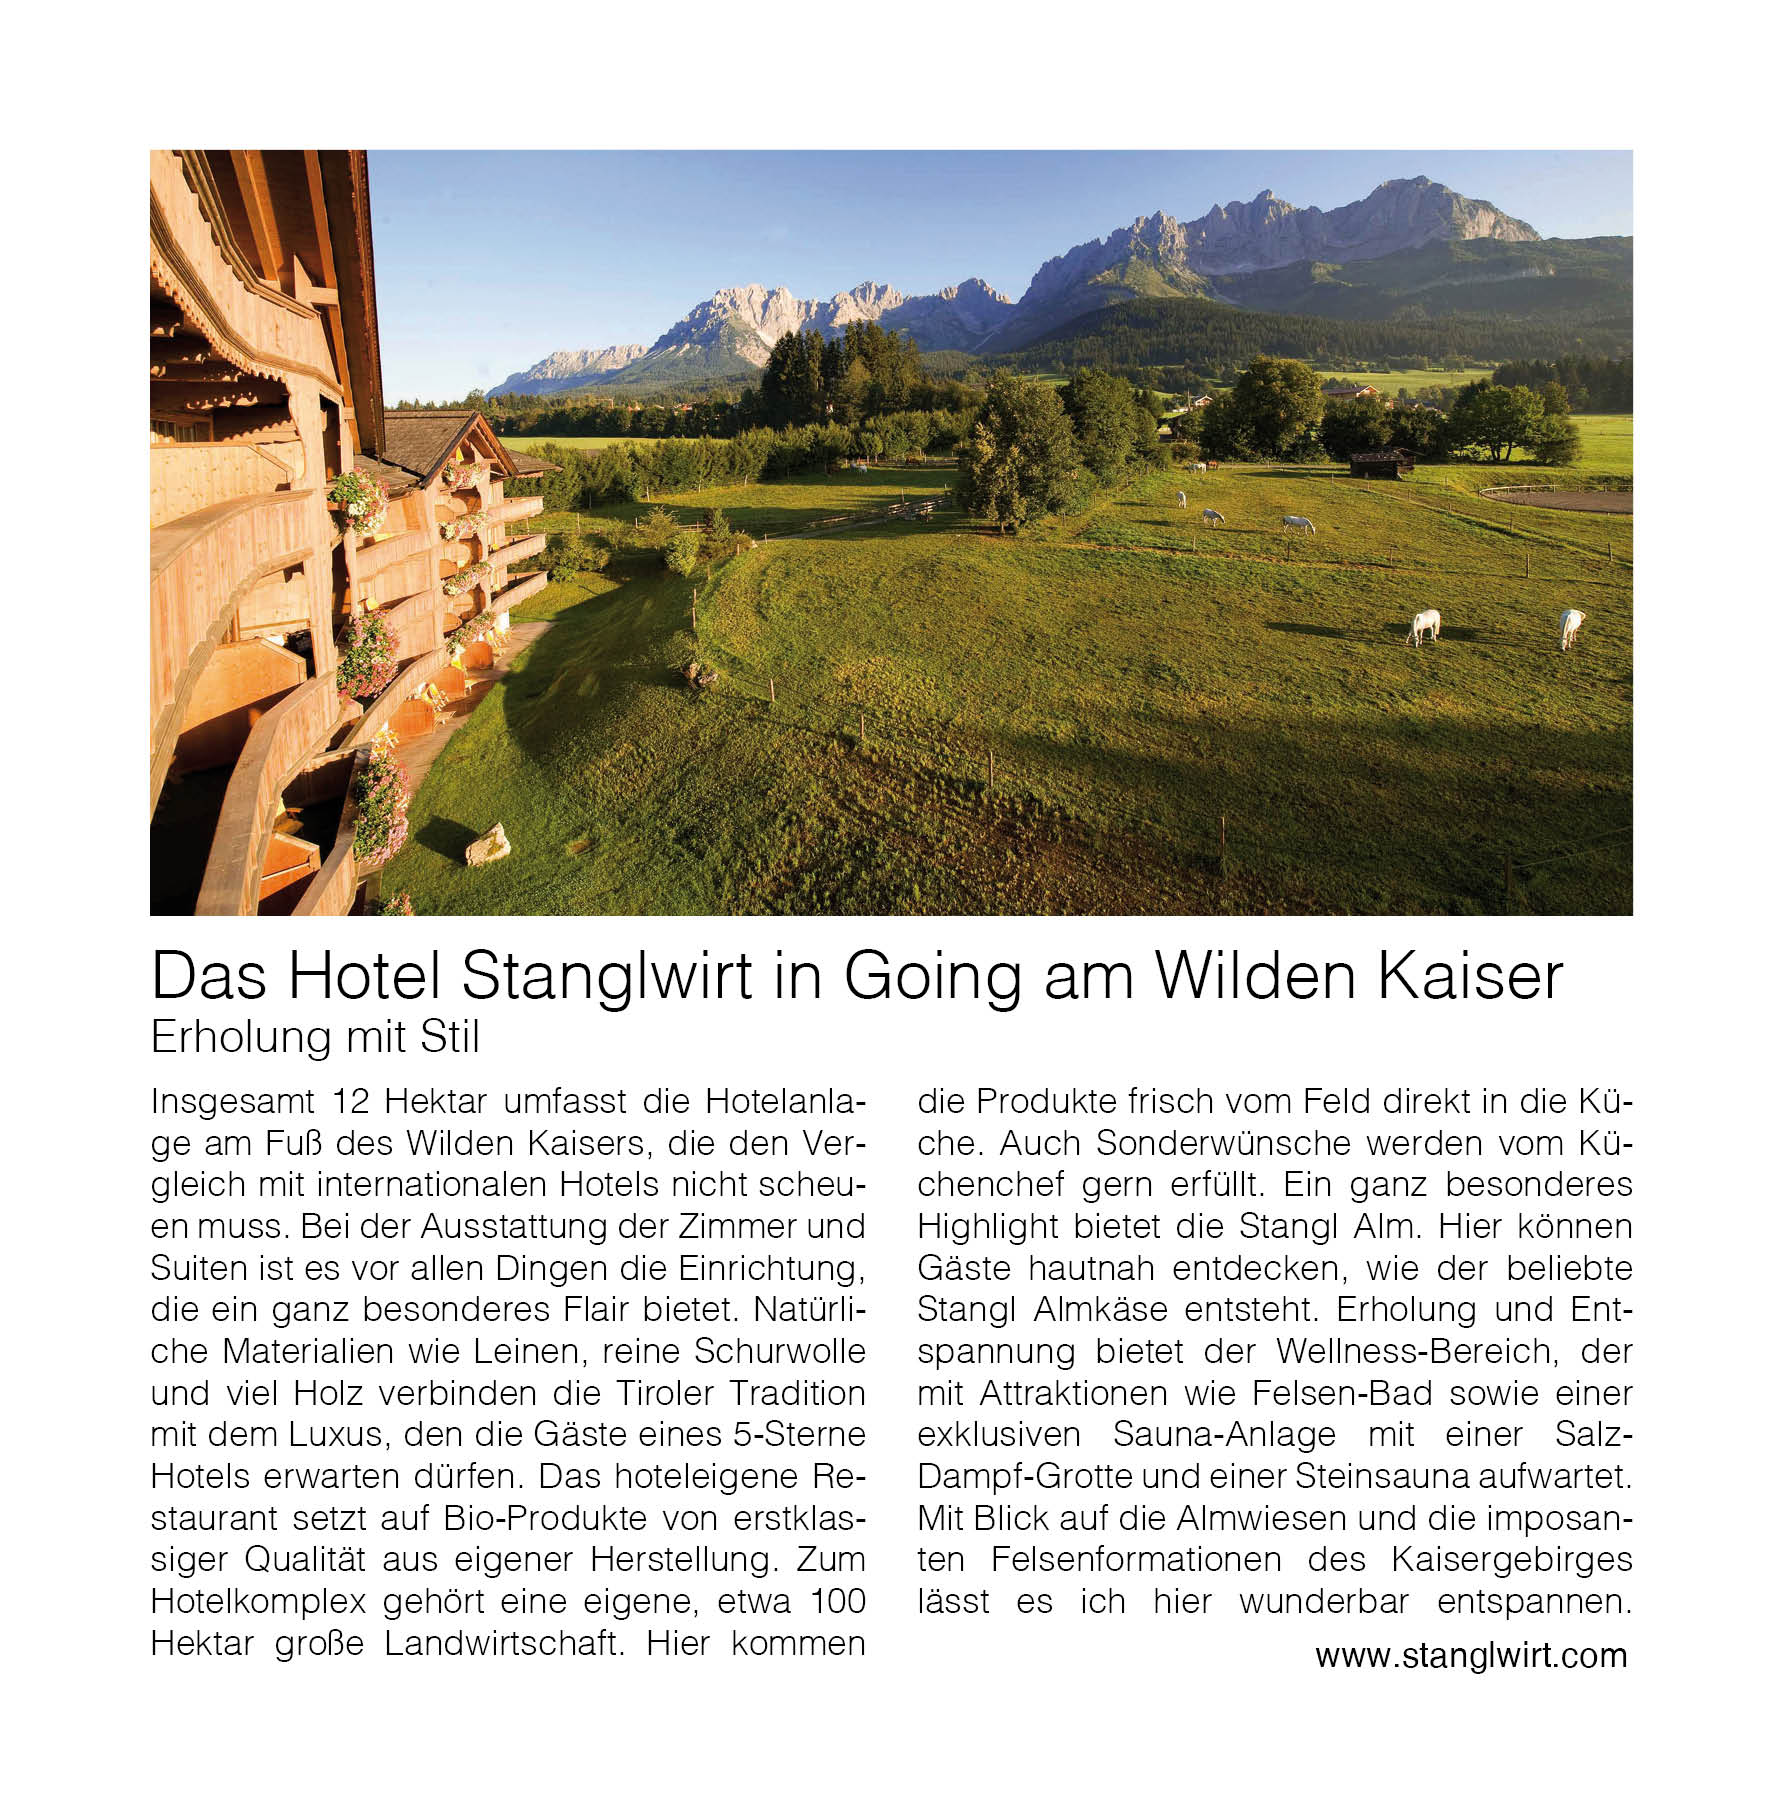 https://www.berge-exclusiv.de/wp-content/uploads/Pocket-Guide-18041622.jpg